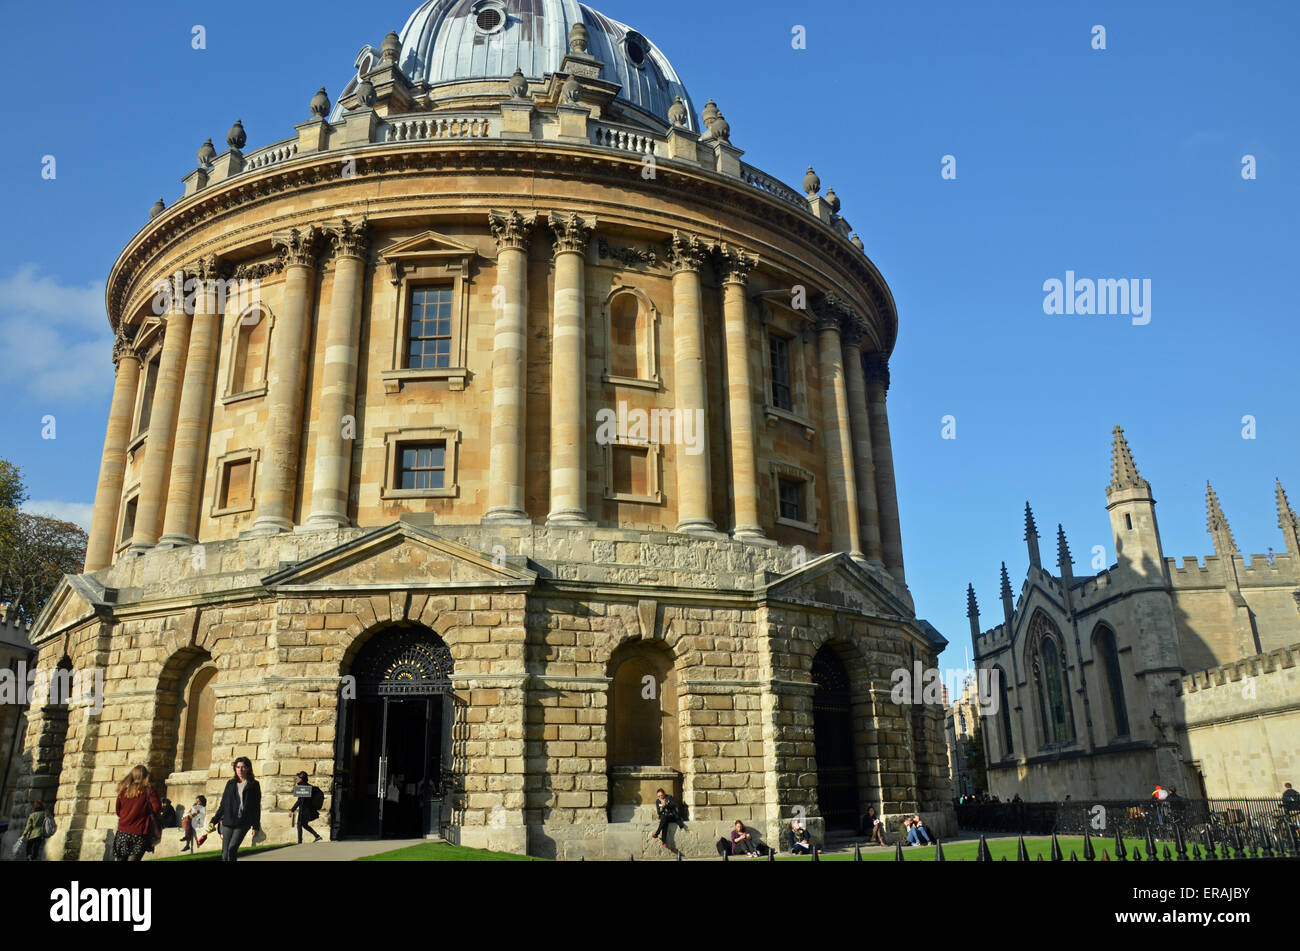 Oxford, UK - October 27, 2014: view of the Radcliffe Camera with All Souls College in Oxford, UK. The historic building - Stock Image